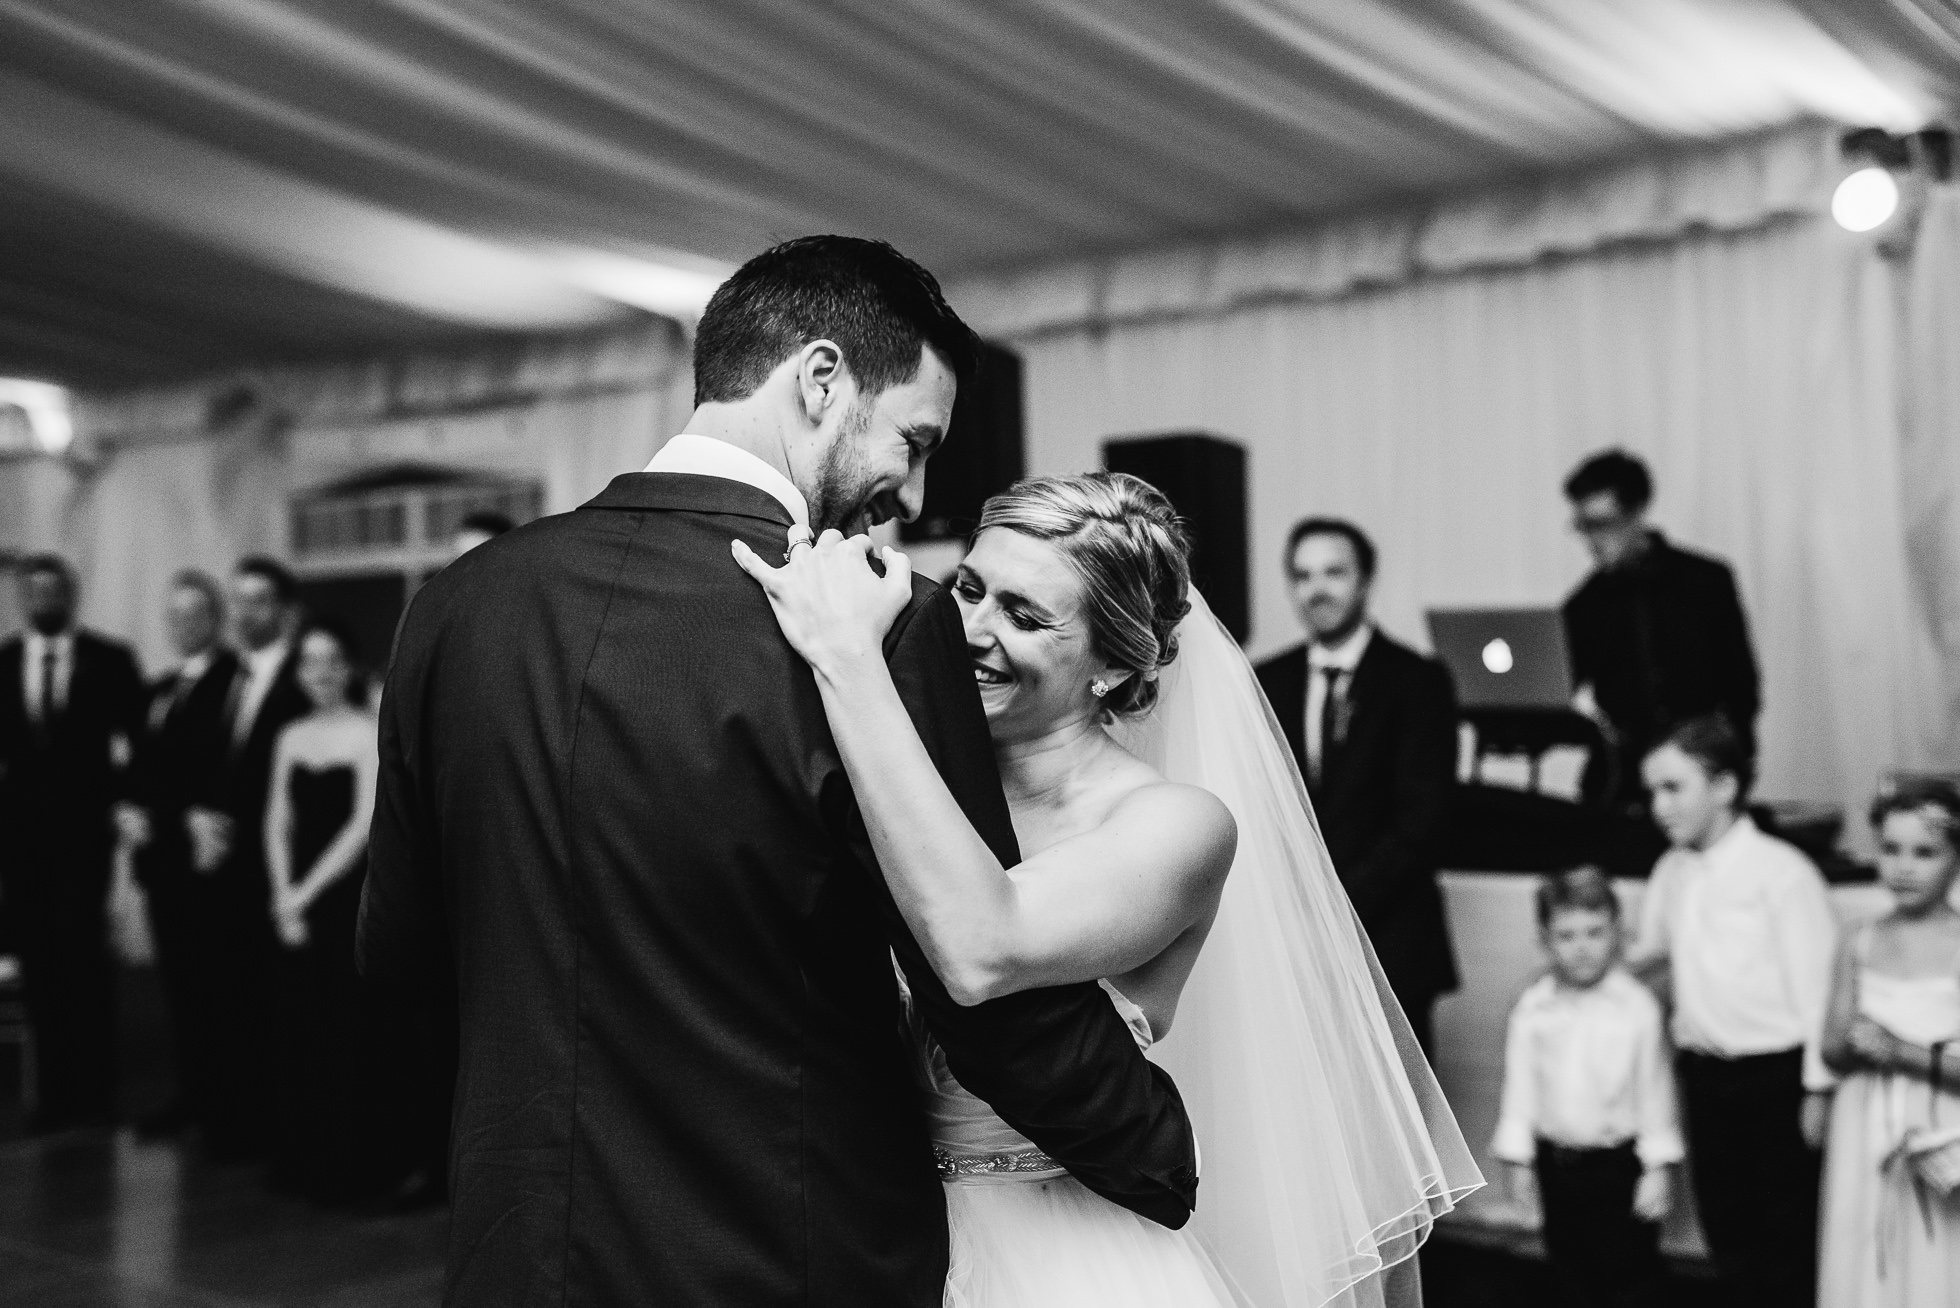 bride and groom first dance at lyndhurst castle wedding photographed by traverse the tides